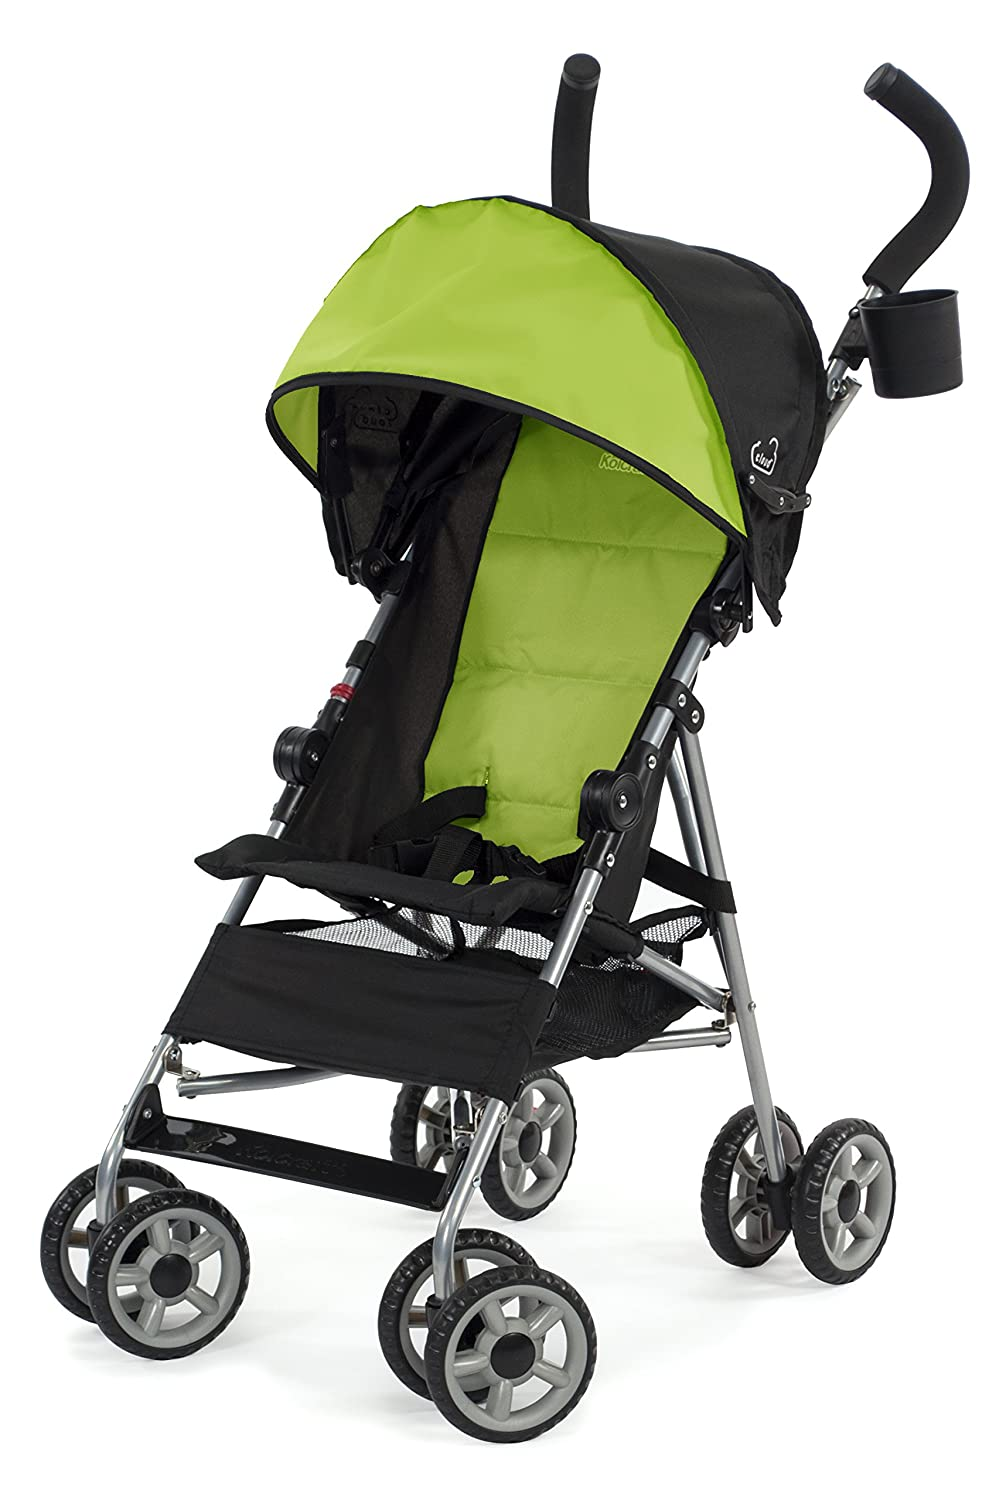 Top 10 Best Umbrella Strollers For Toddler Reviews in 2021 2